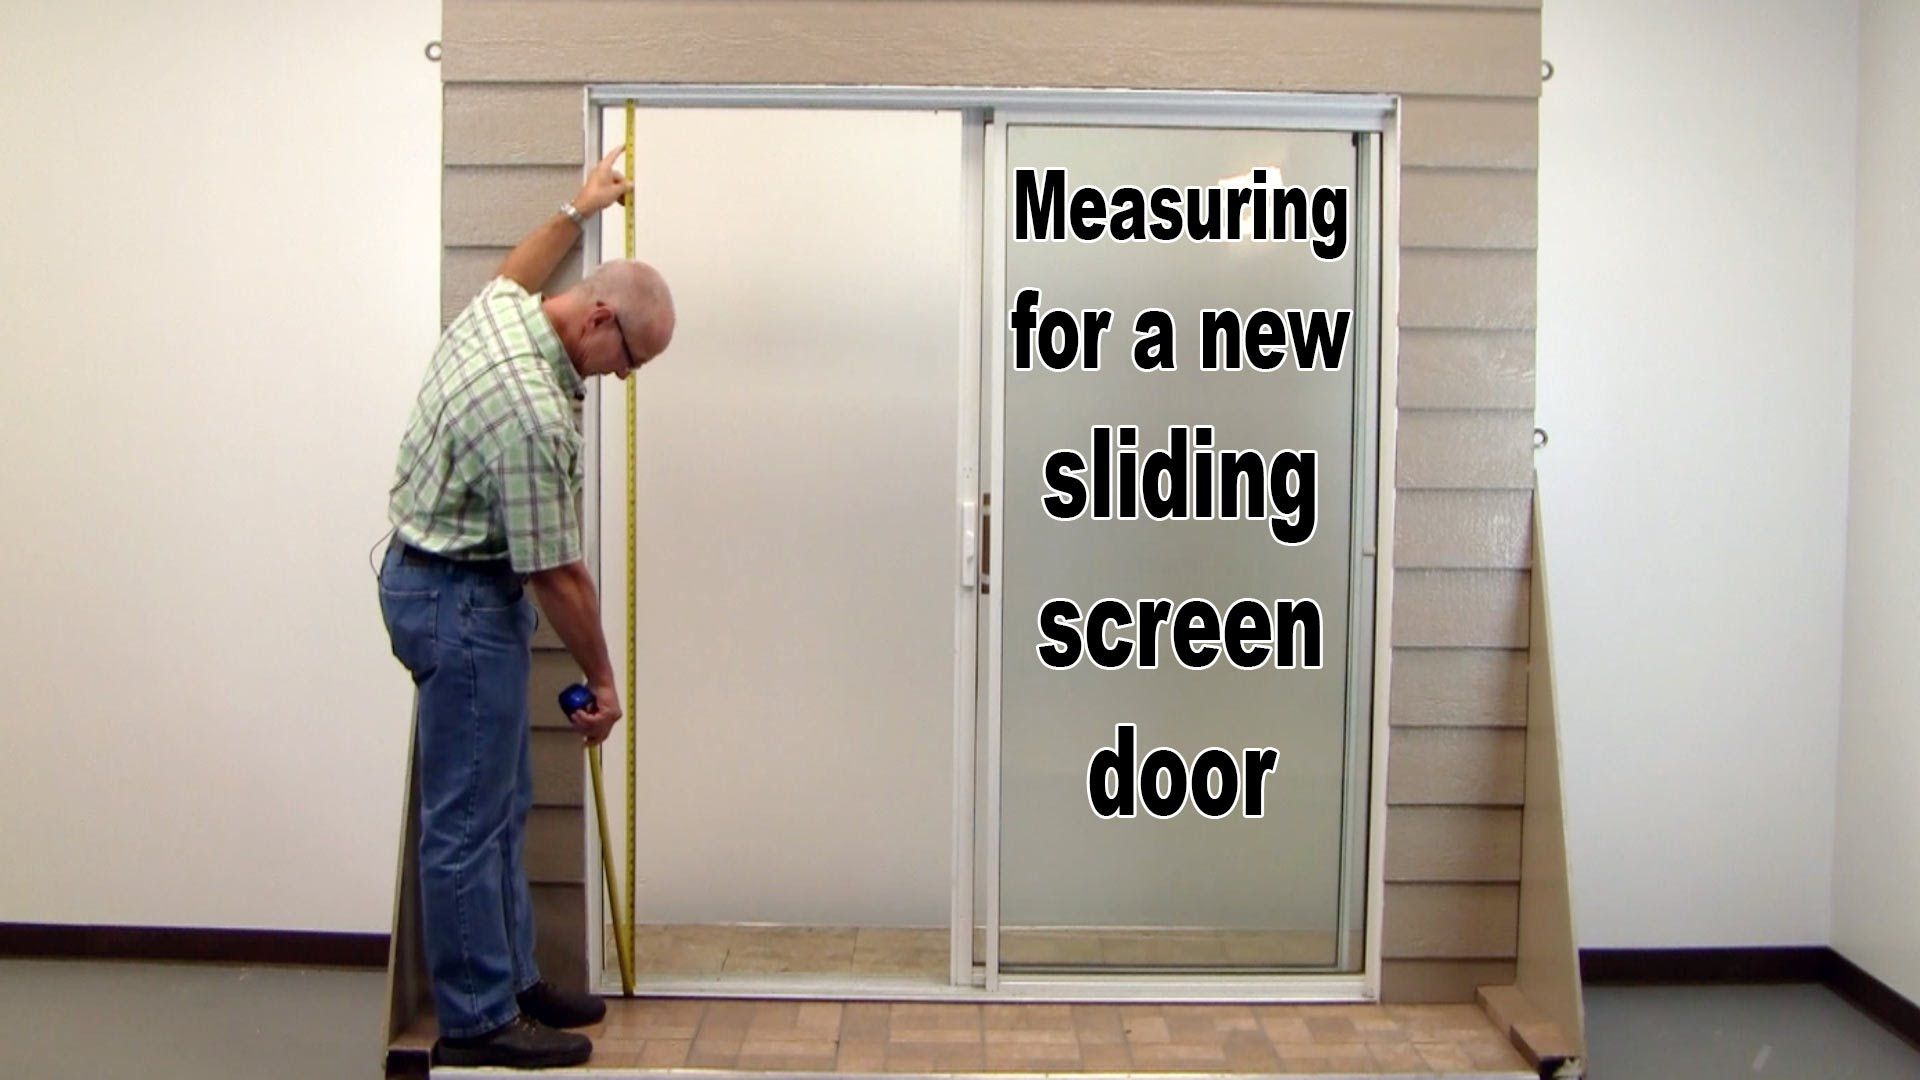 HowTo Measure For a New Sliding Screen Door. Sliding